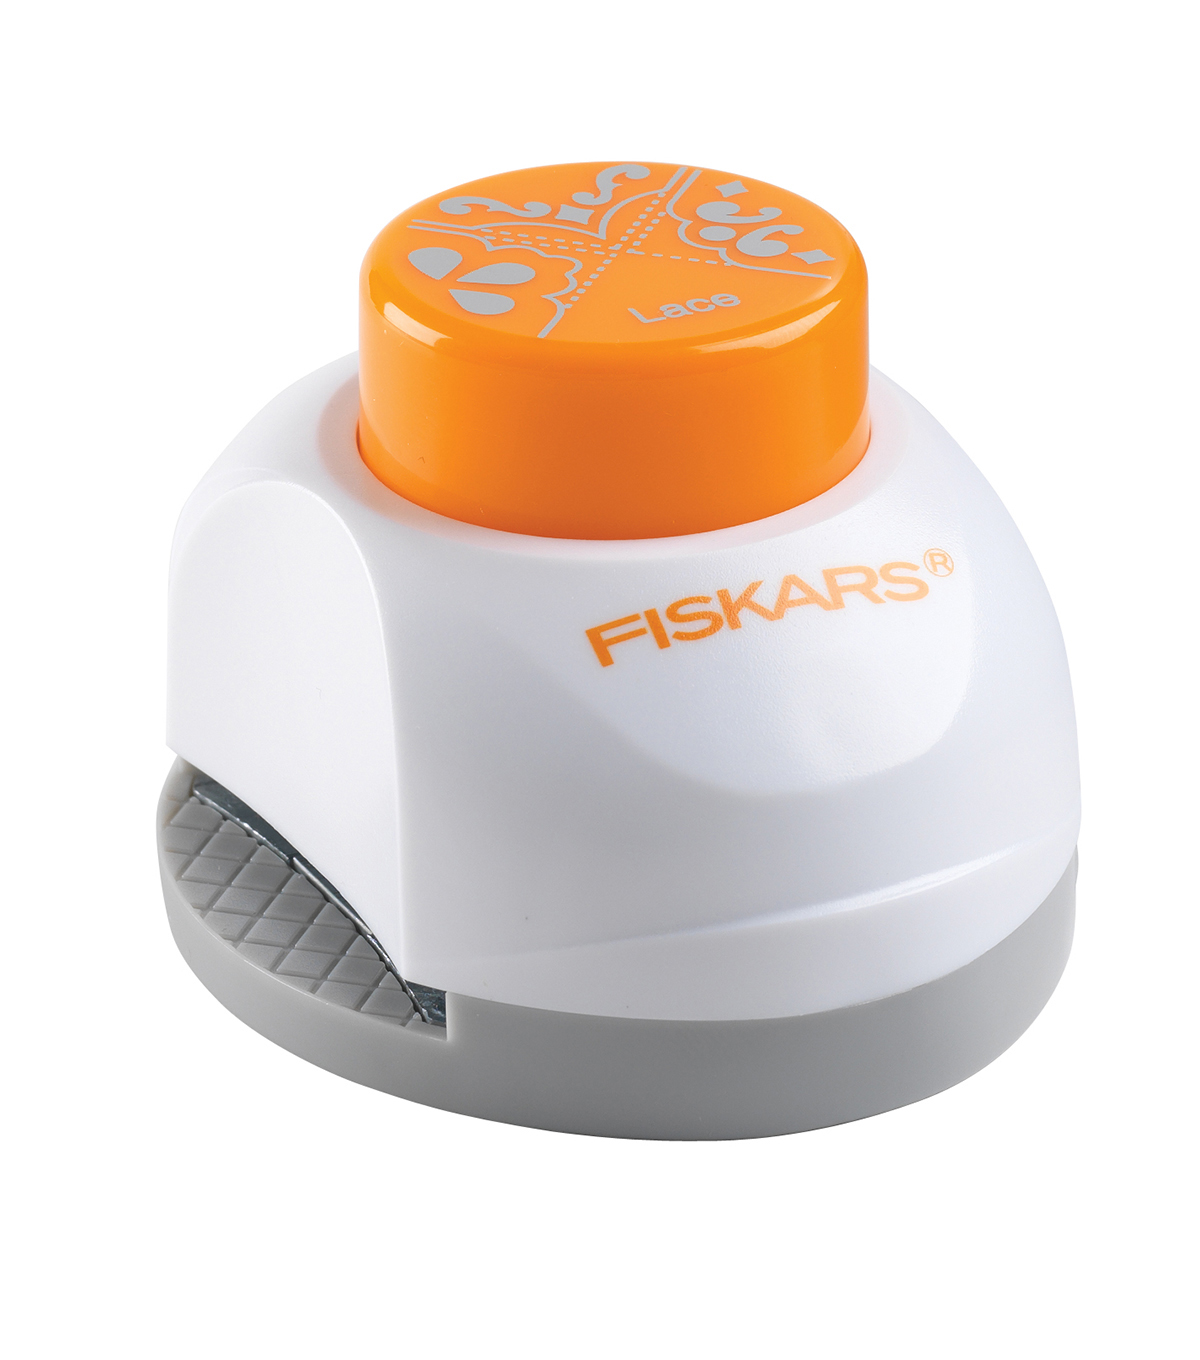 Fiskars Photo 3-in-1 Corner Punch-1PK/Lace